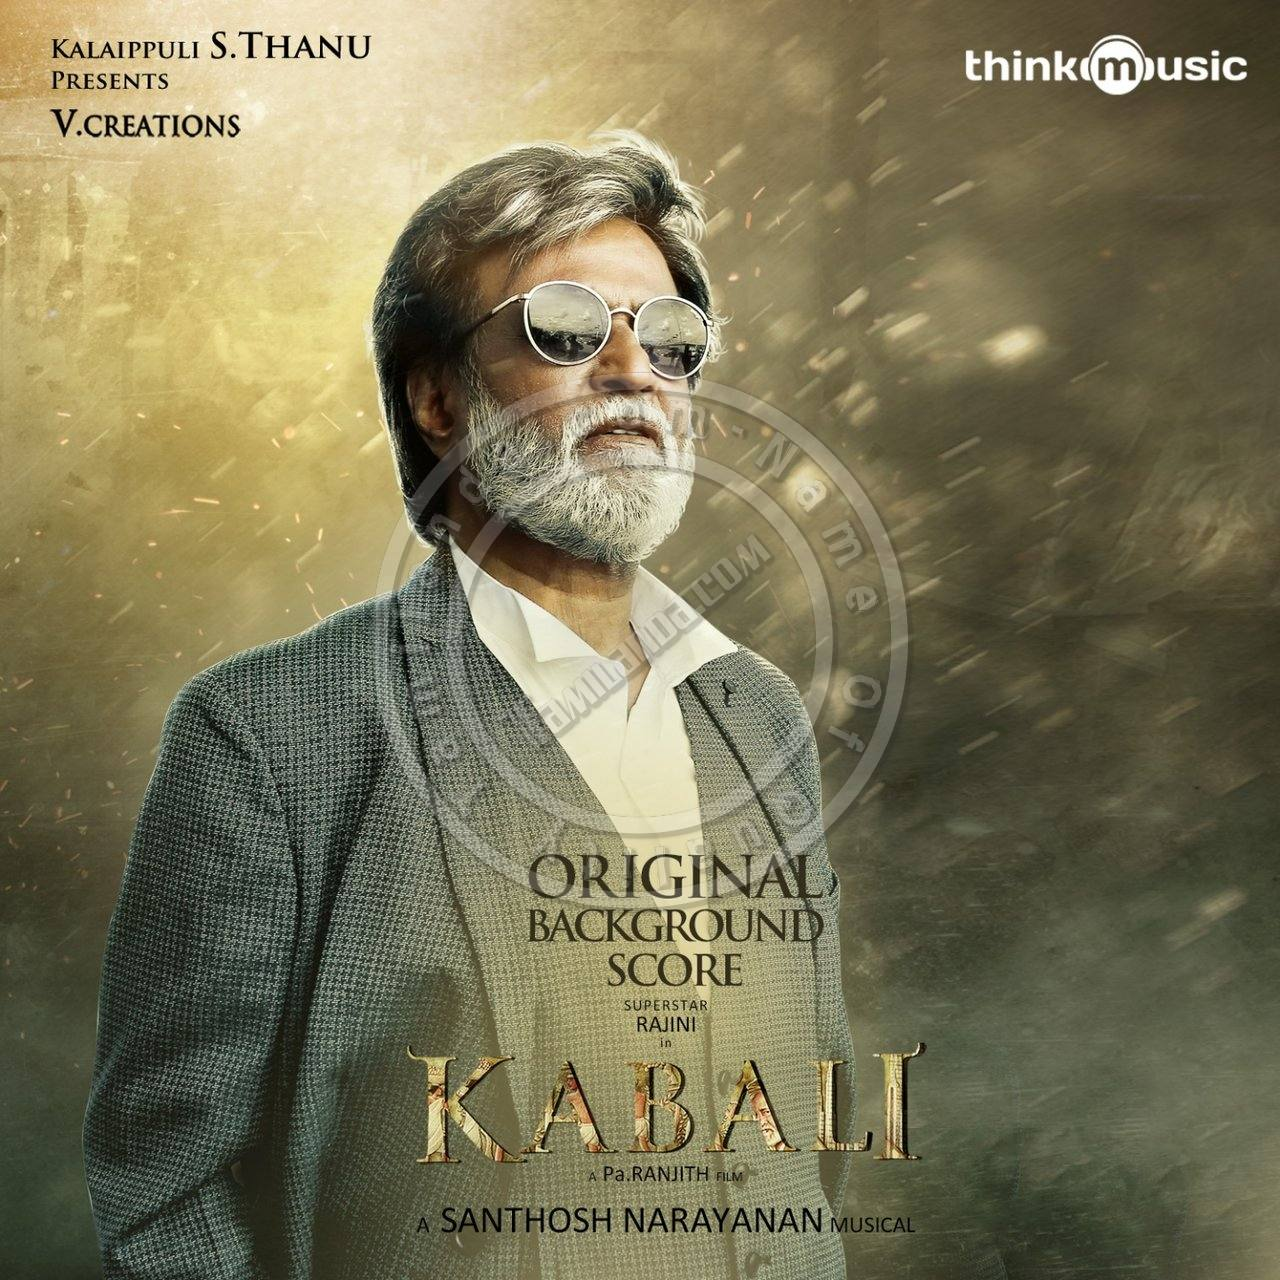 Kabali (Original Background Score) 16 BIT FLAC BGMs